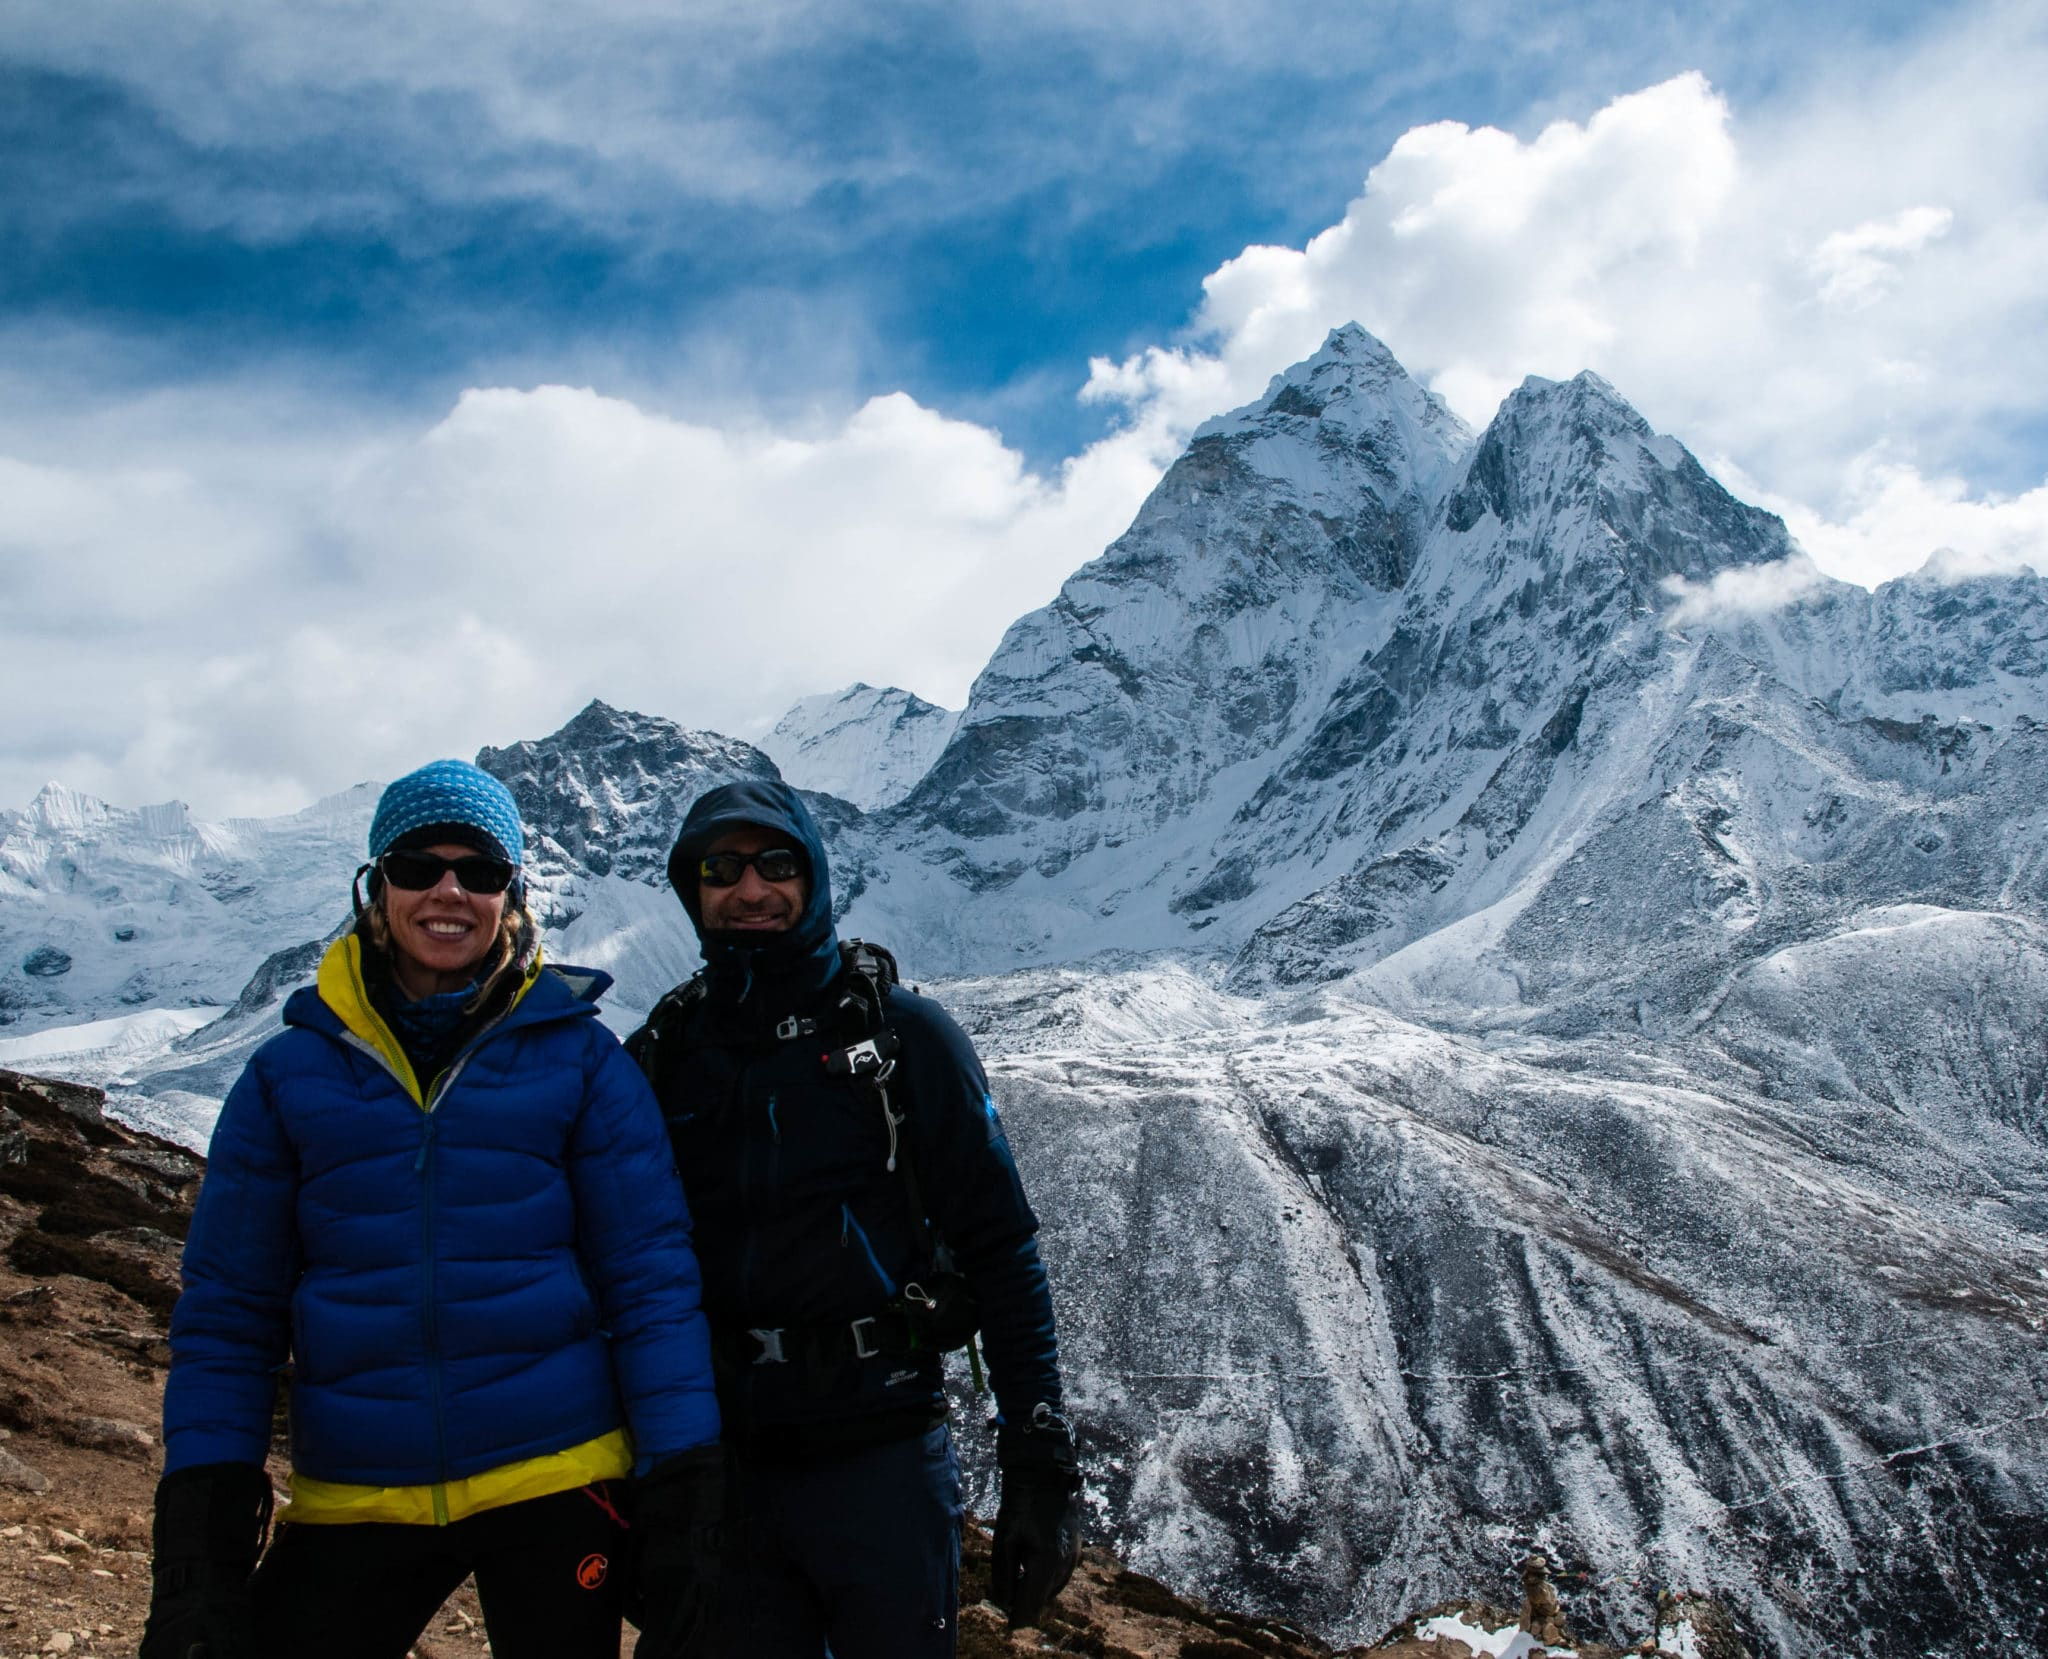 Julie and Shawn above Dingboche on an acclimatization day hike